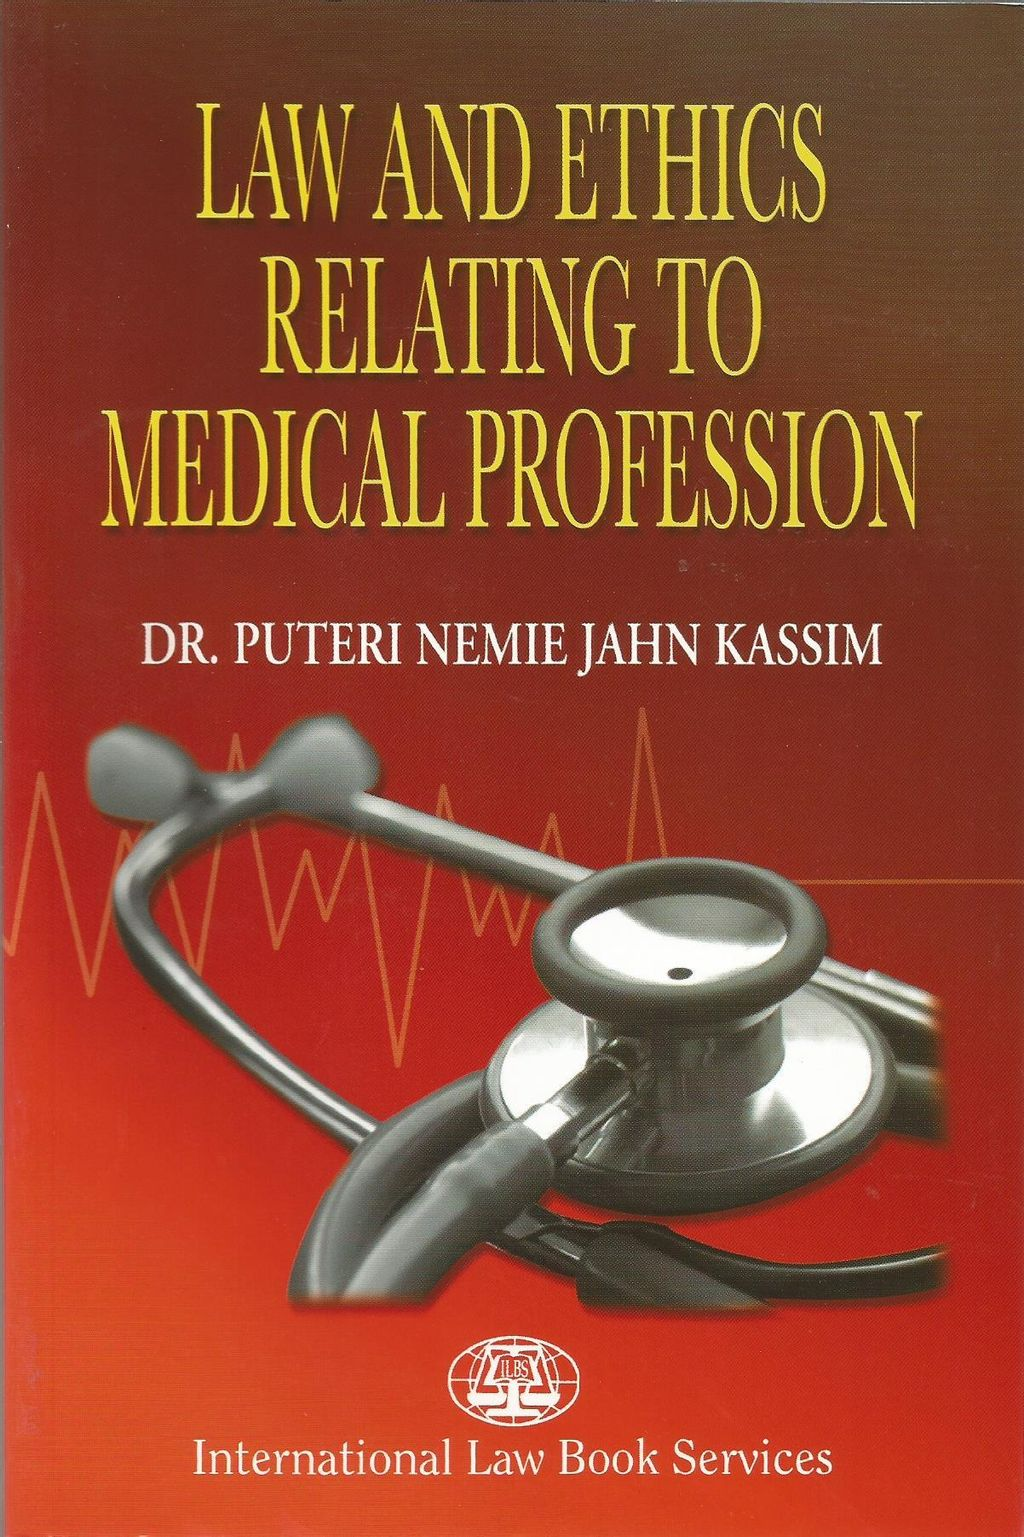 law and ethics medical rm57.5 0.60001.jpg